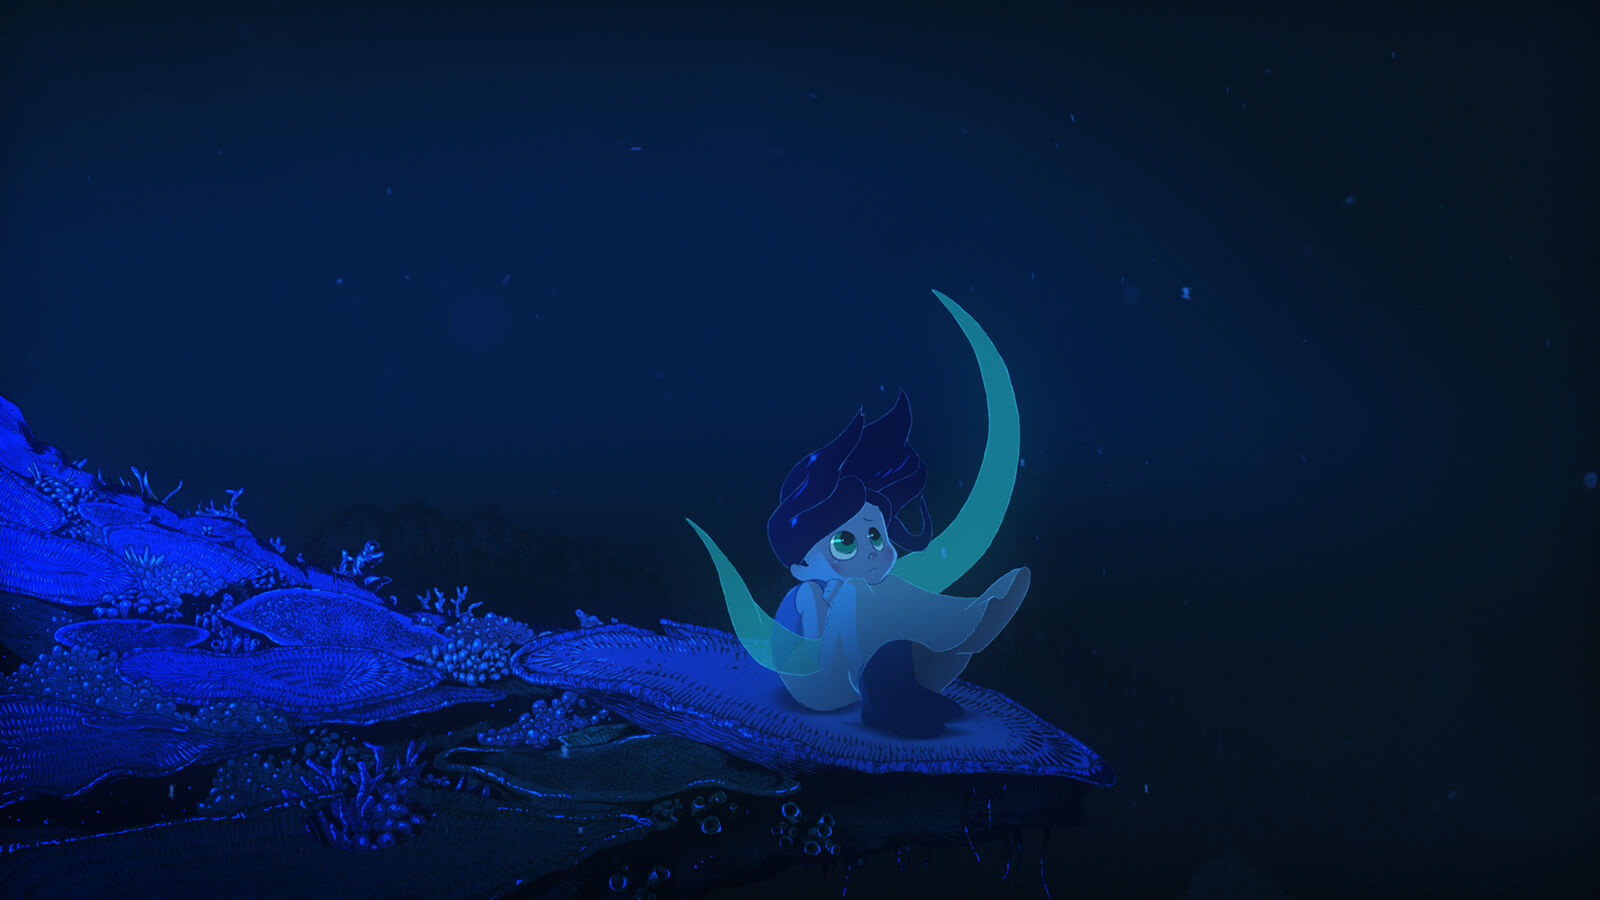 A girl sits on top of a flat coral seat underwater. She looks up into the dark sea.